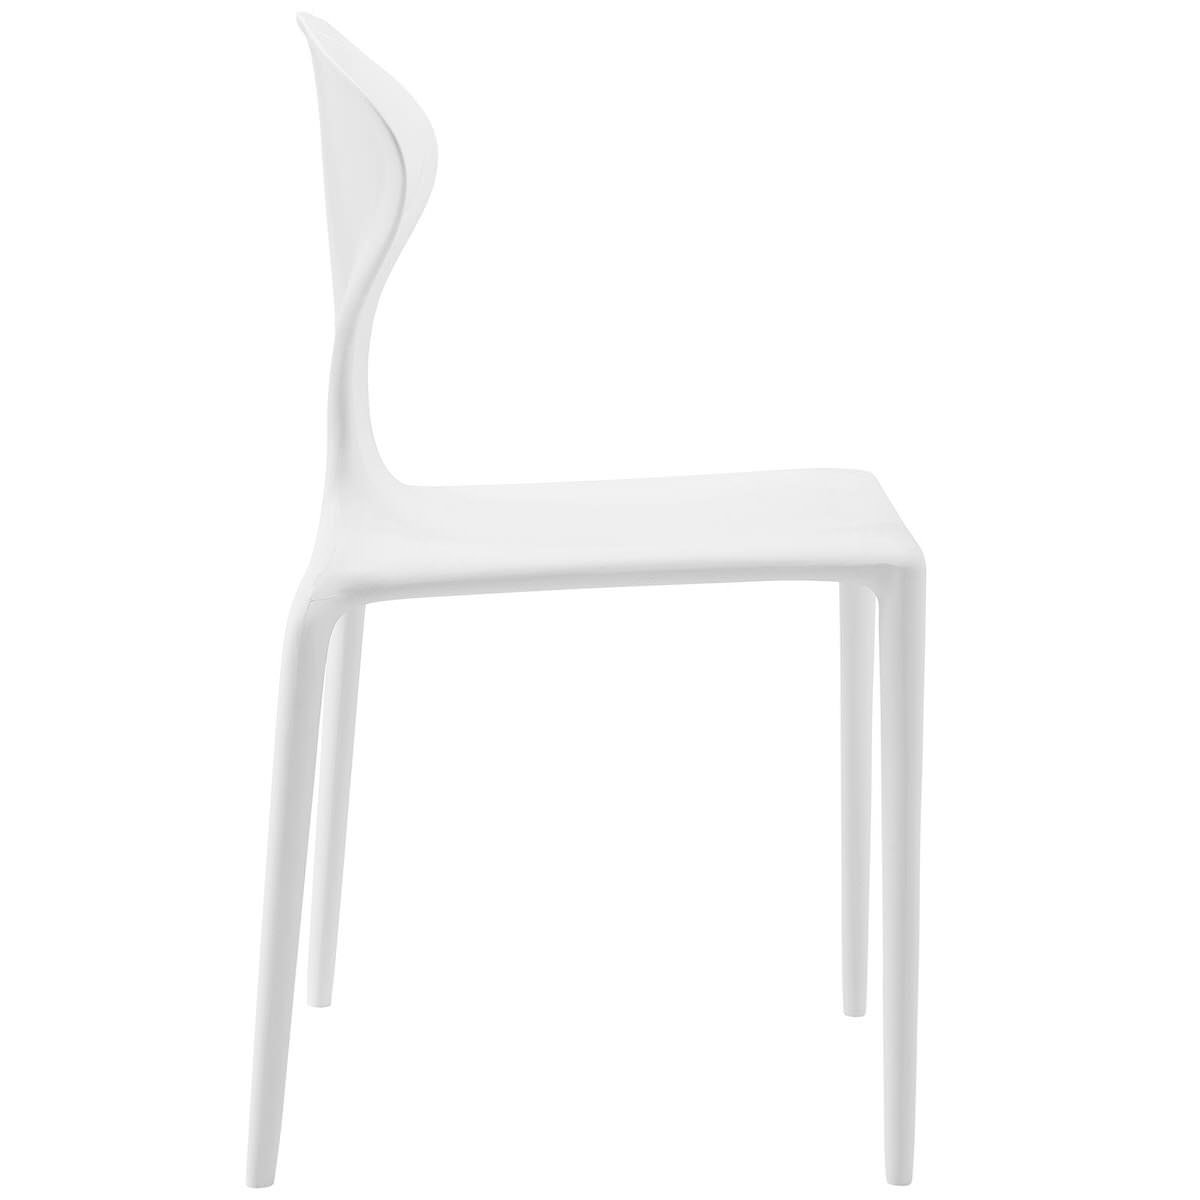 Fabulous Draw Dining Side Chair White By Modway Uwap Interior Chair Design Uwaporg